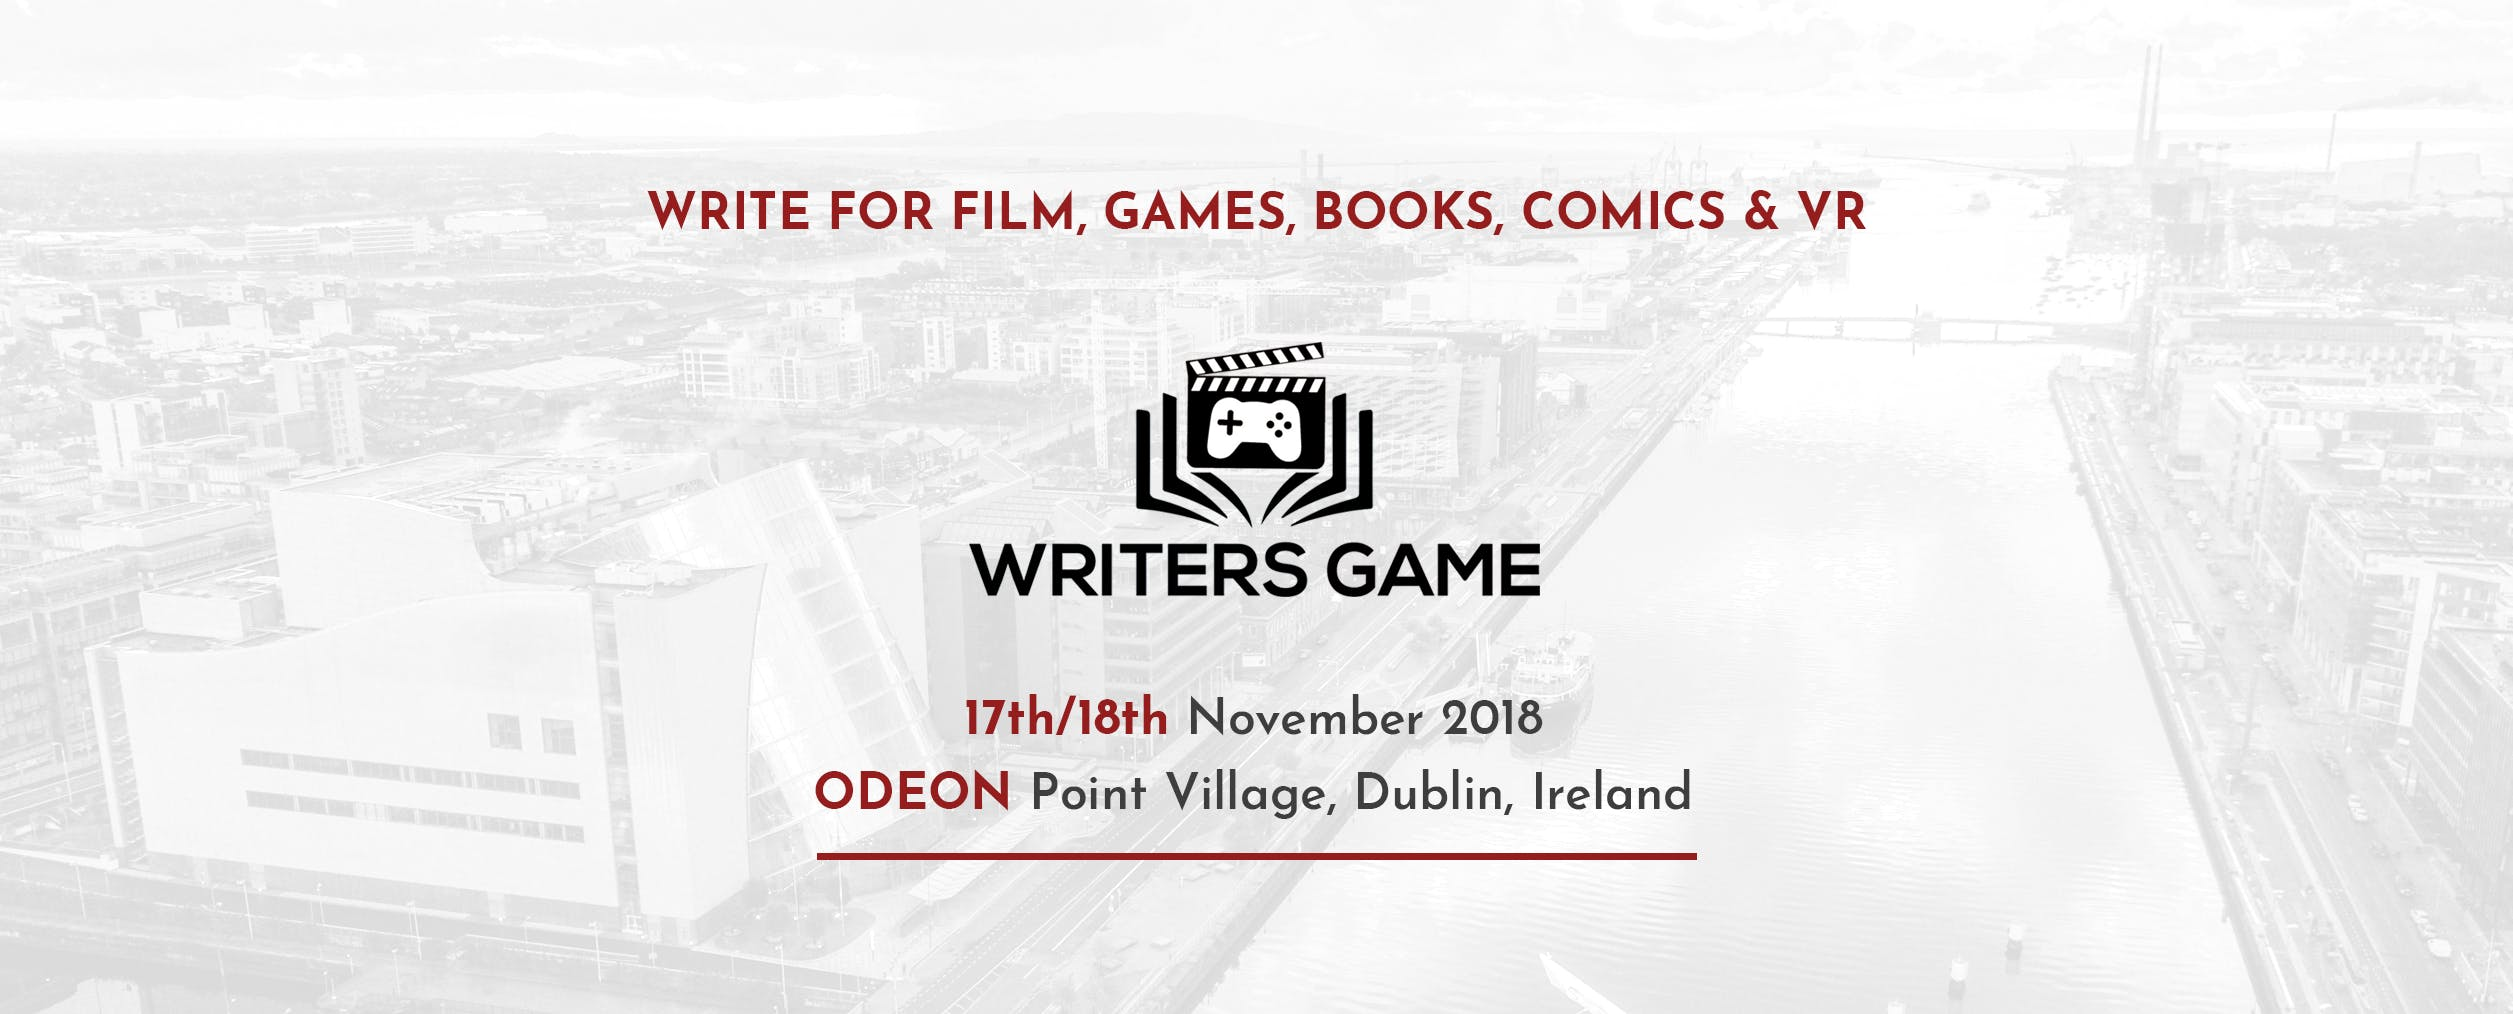 WRITERS GAME Empowers Writers of Film, Games, Books and VR/AR